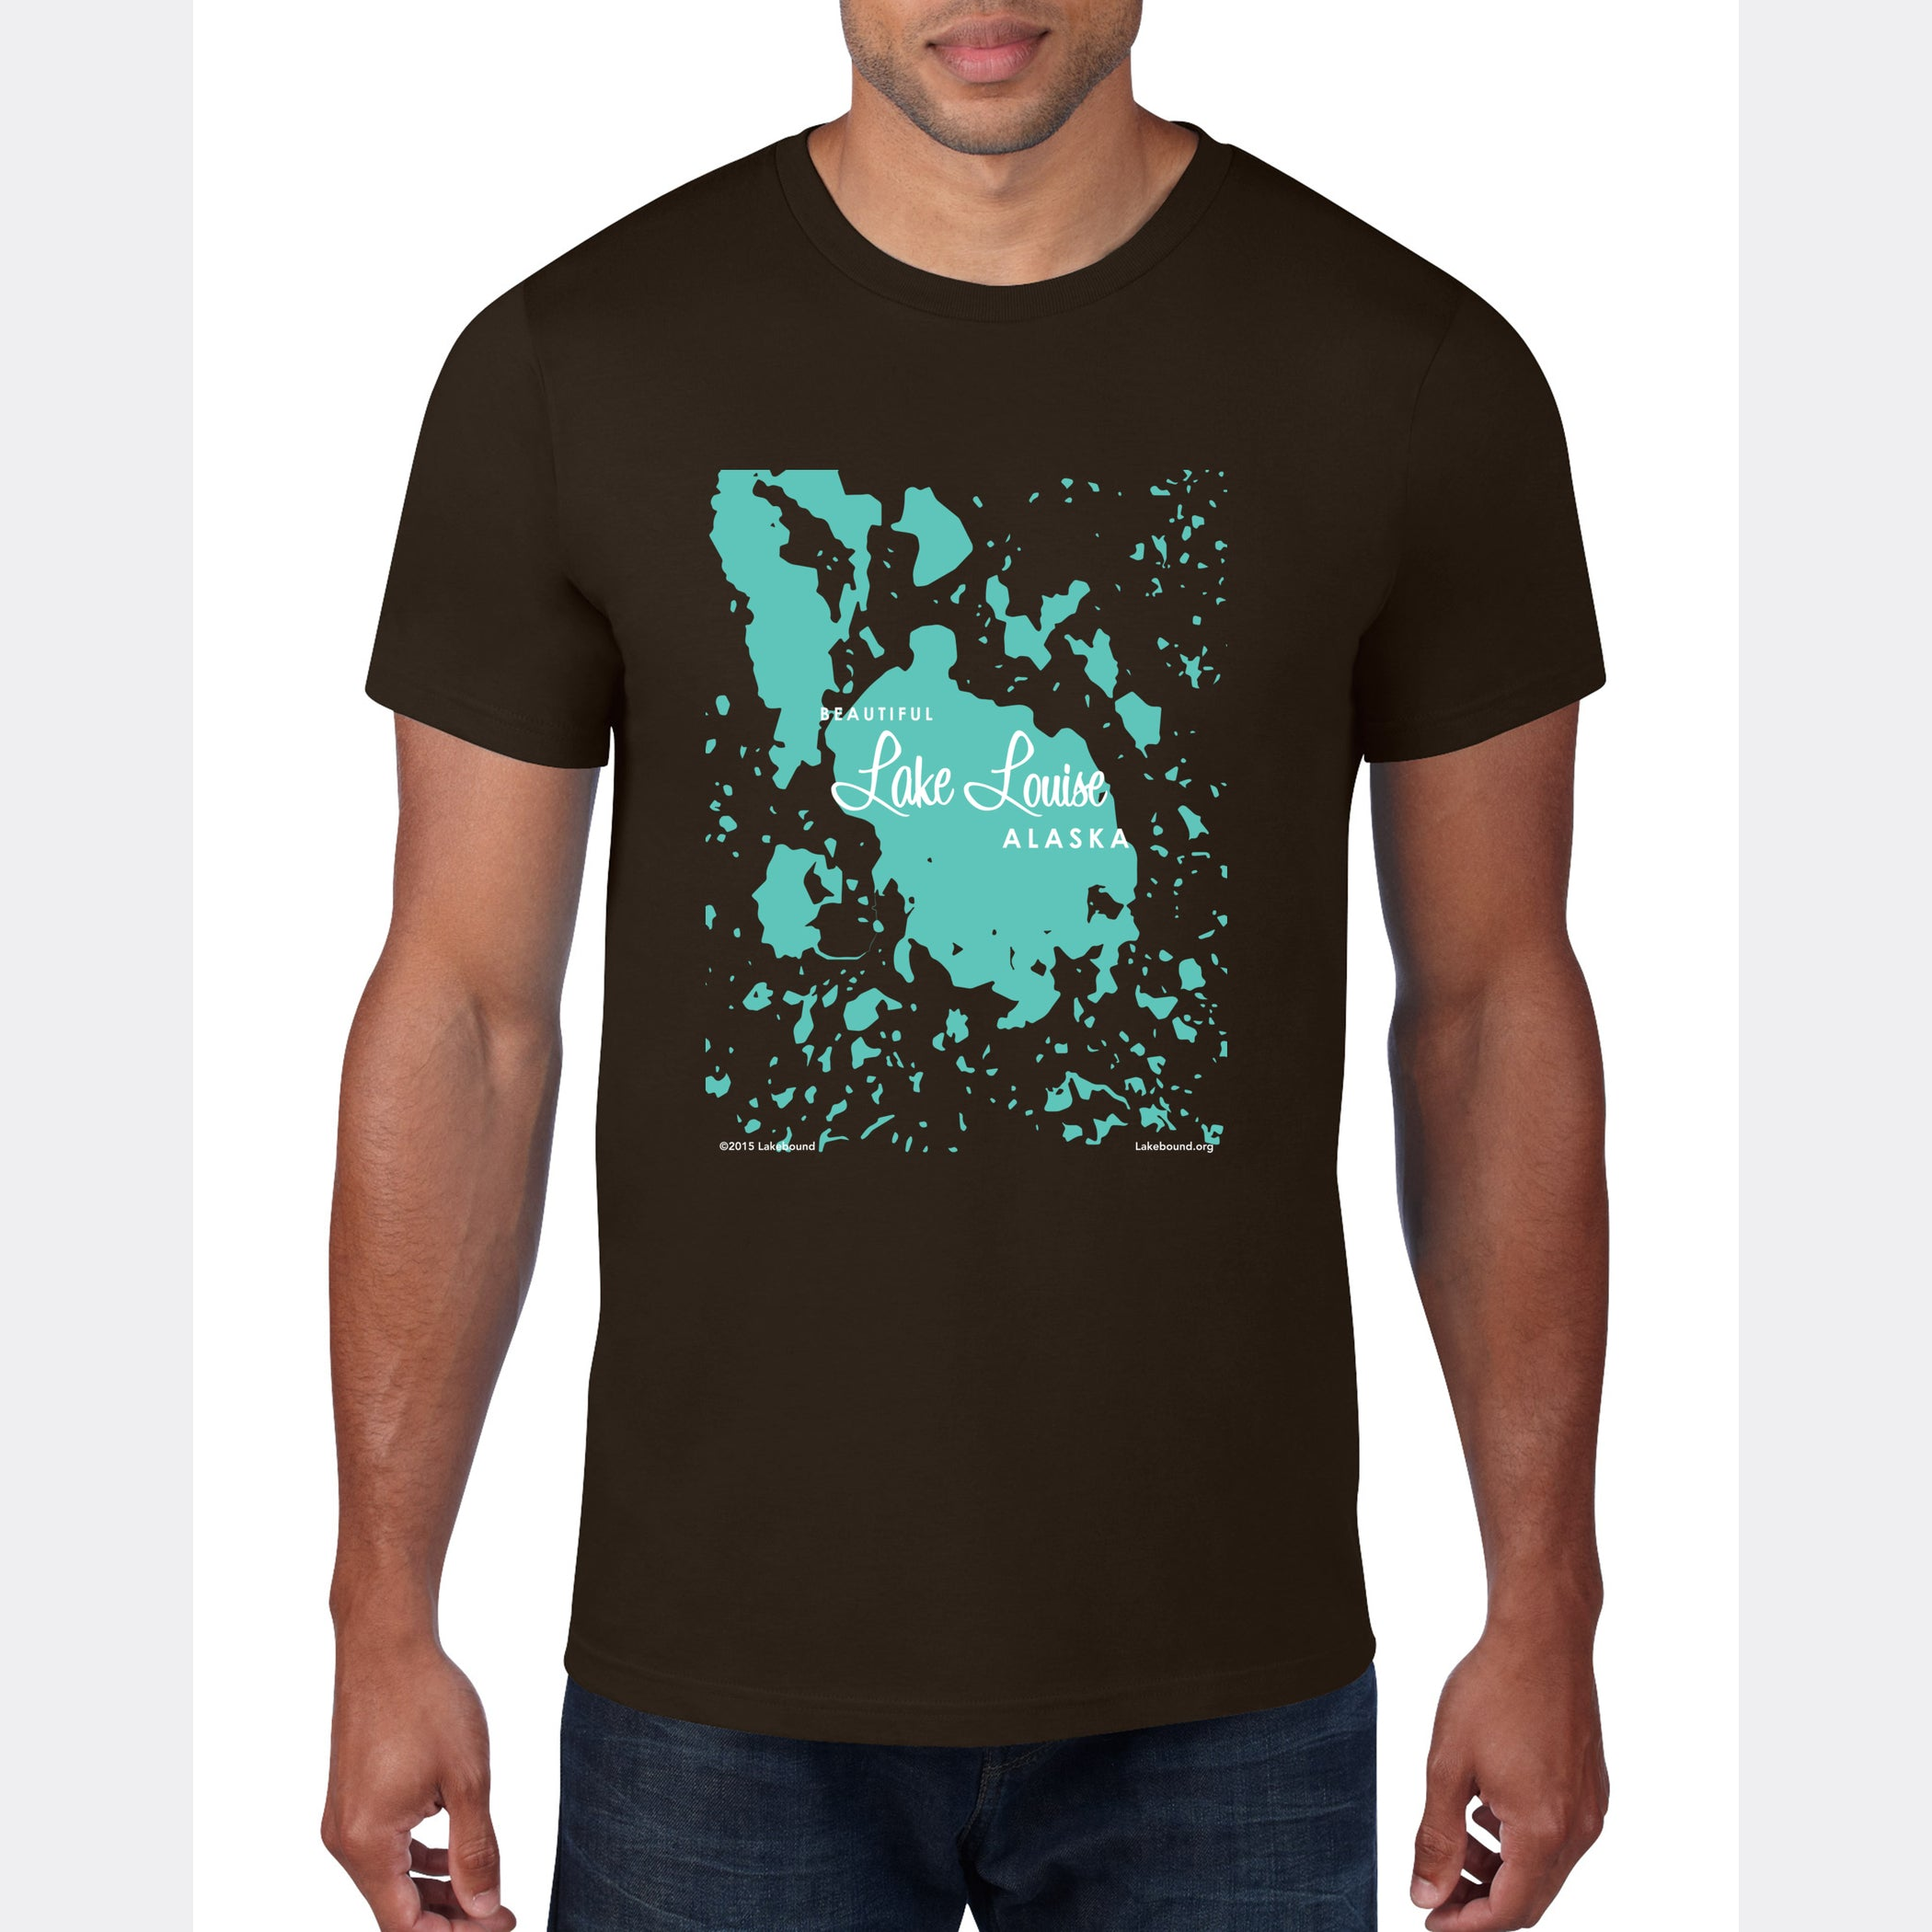 Lake Louise Alaska, T-Shirt